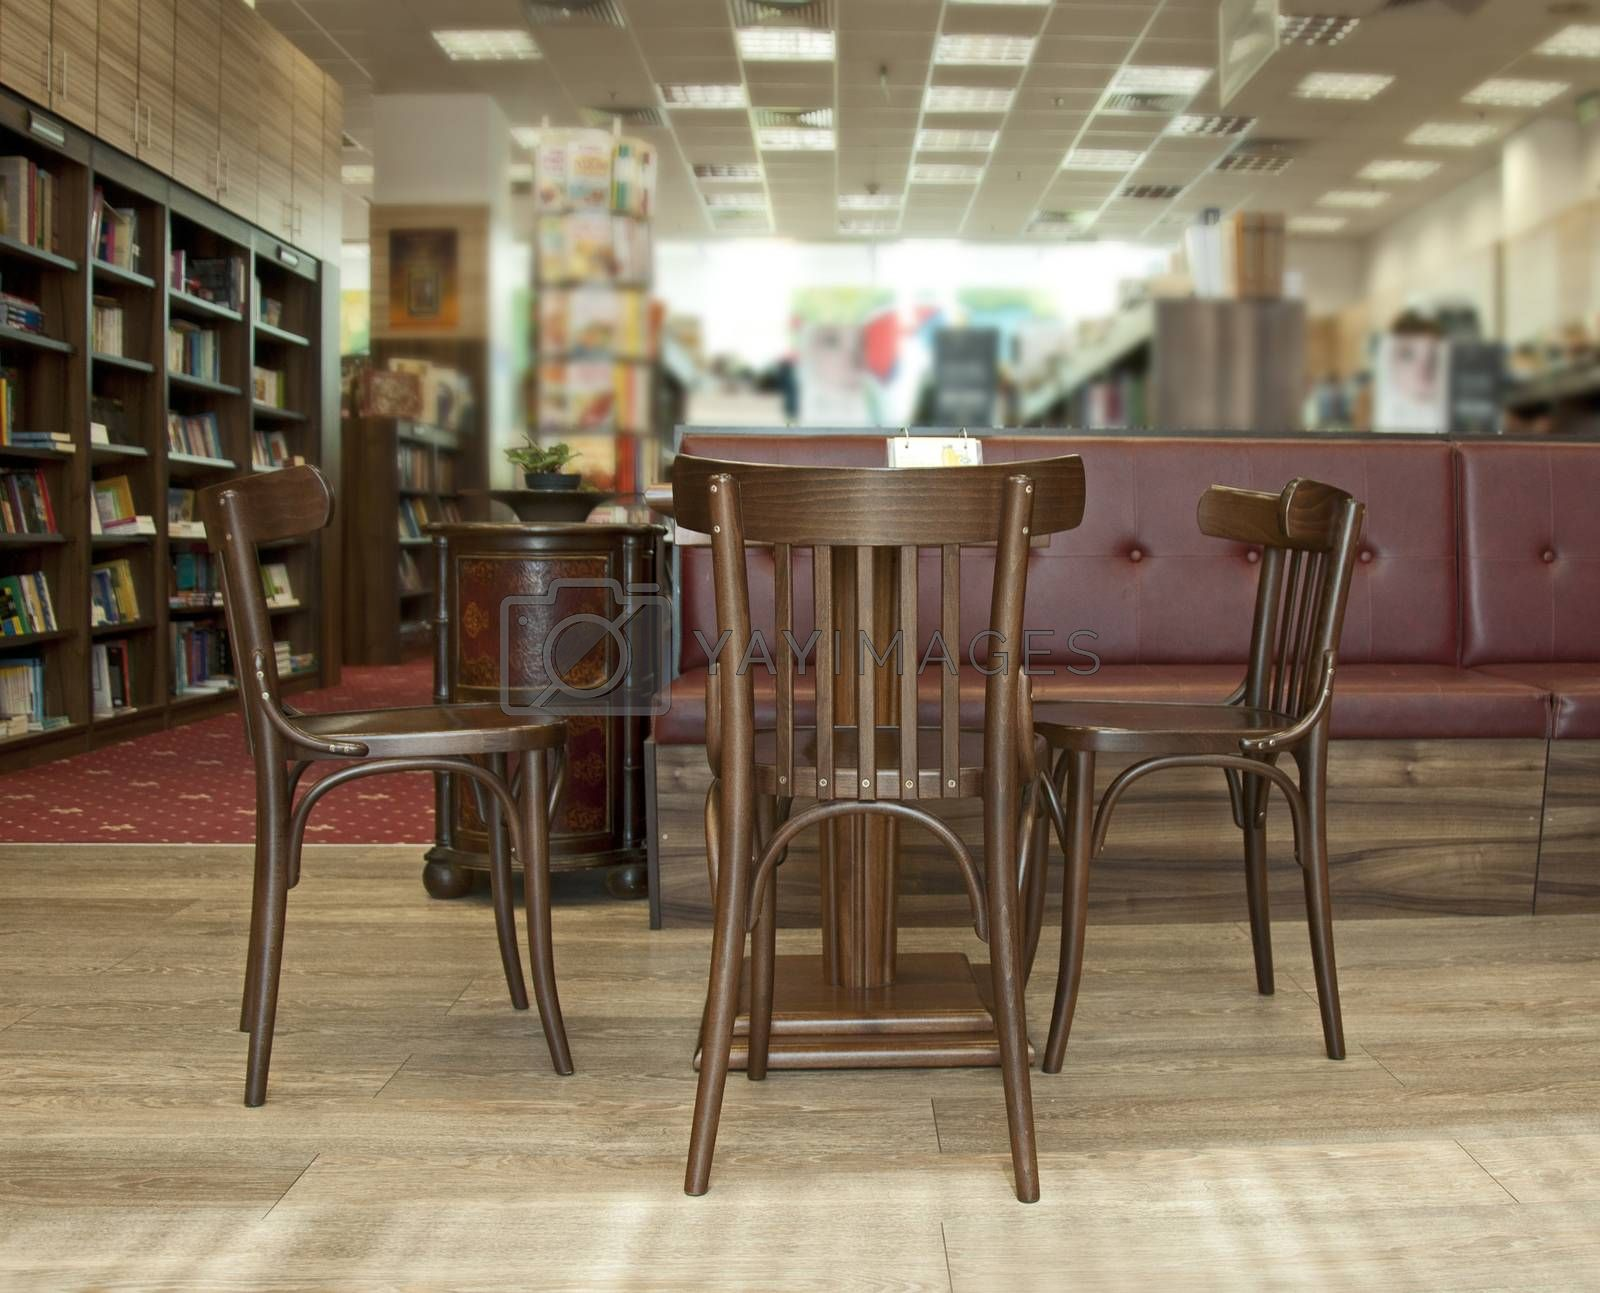 Library with chairs and table. A lot of books